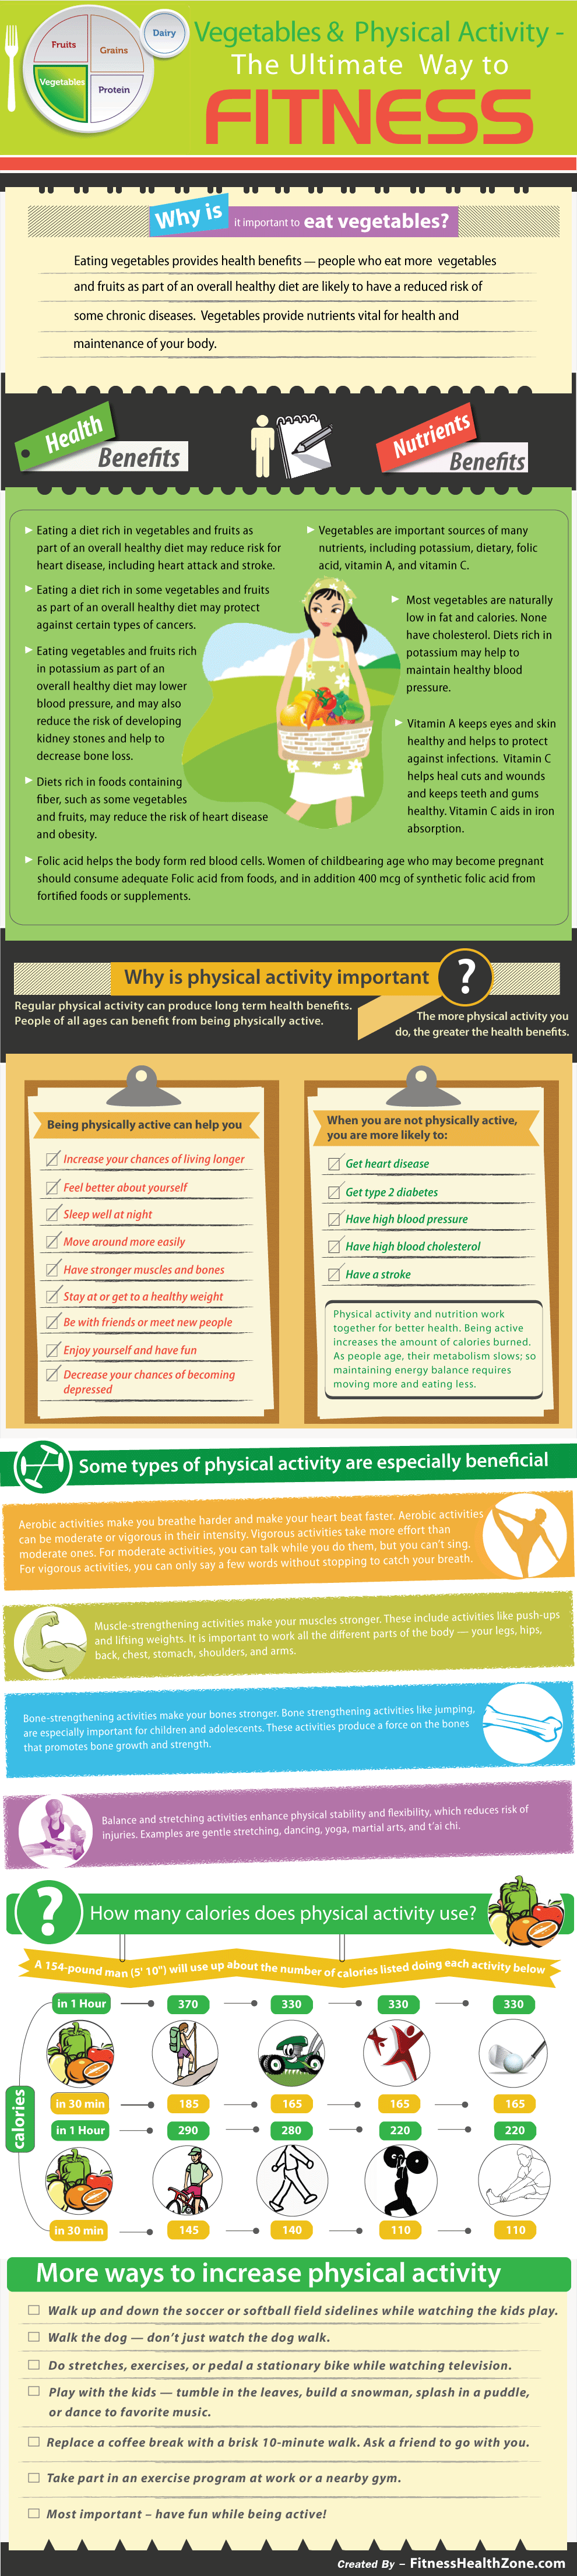 Vegetables and Physical Activity for Health